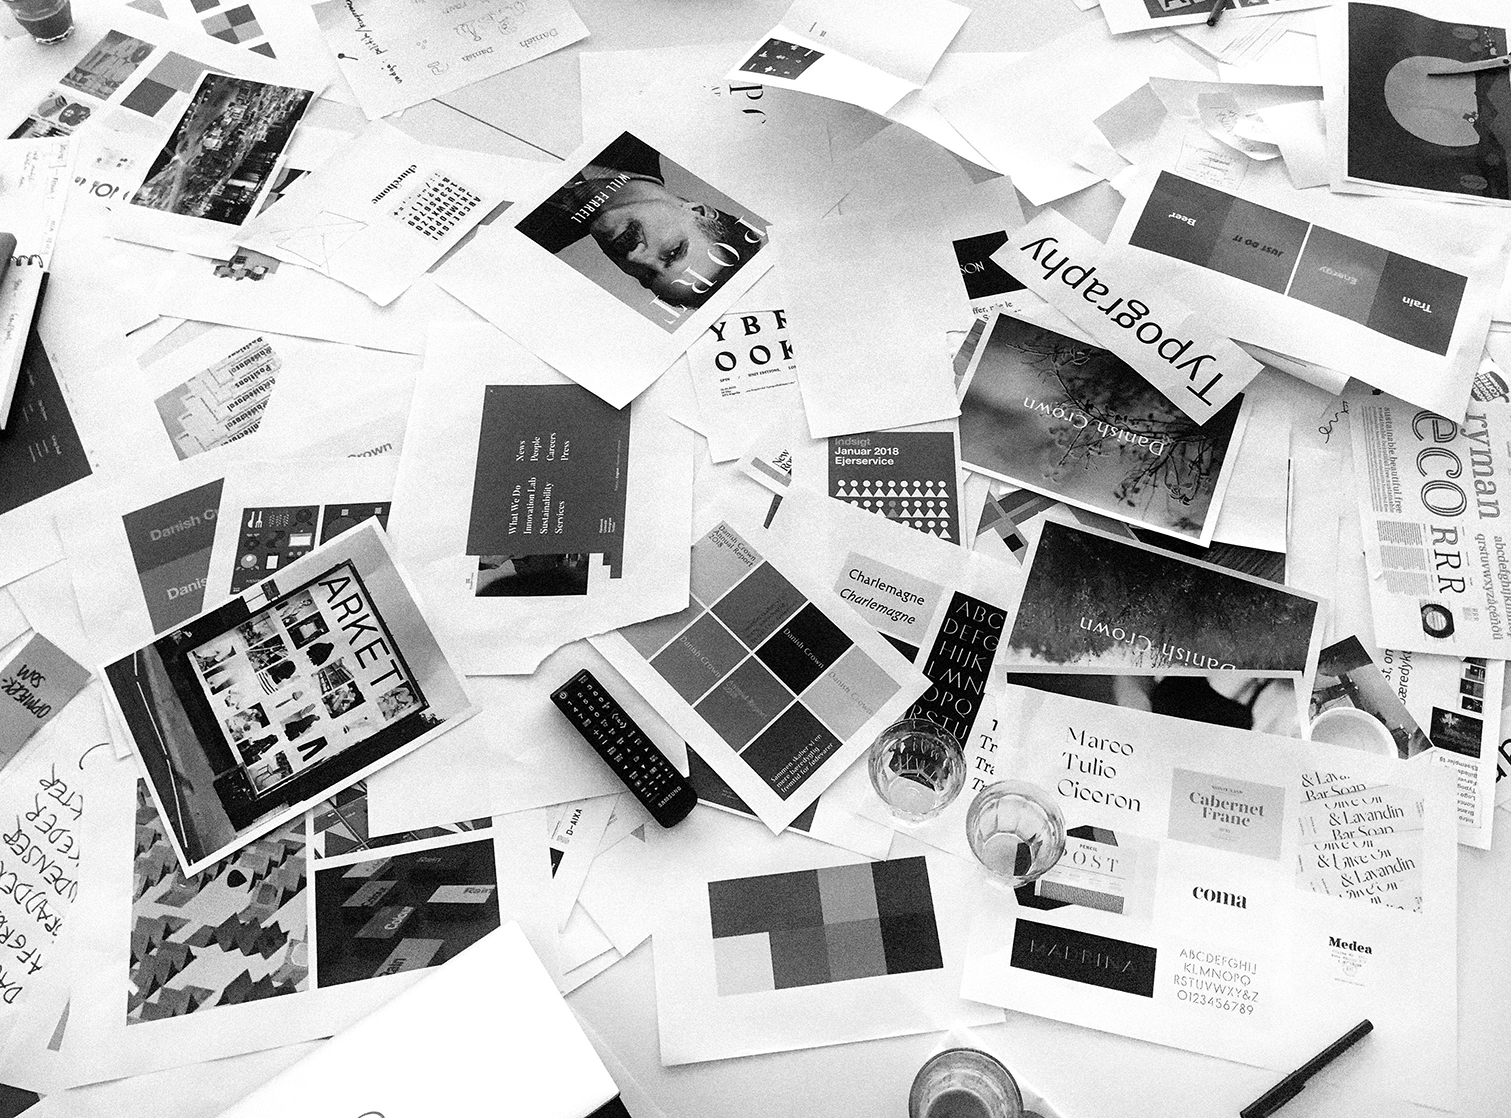 Black and white process picture of papers on the ground